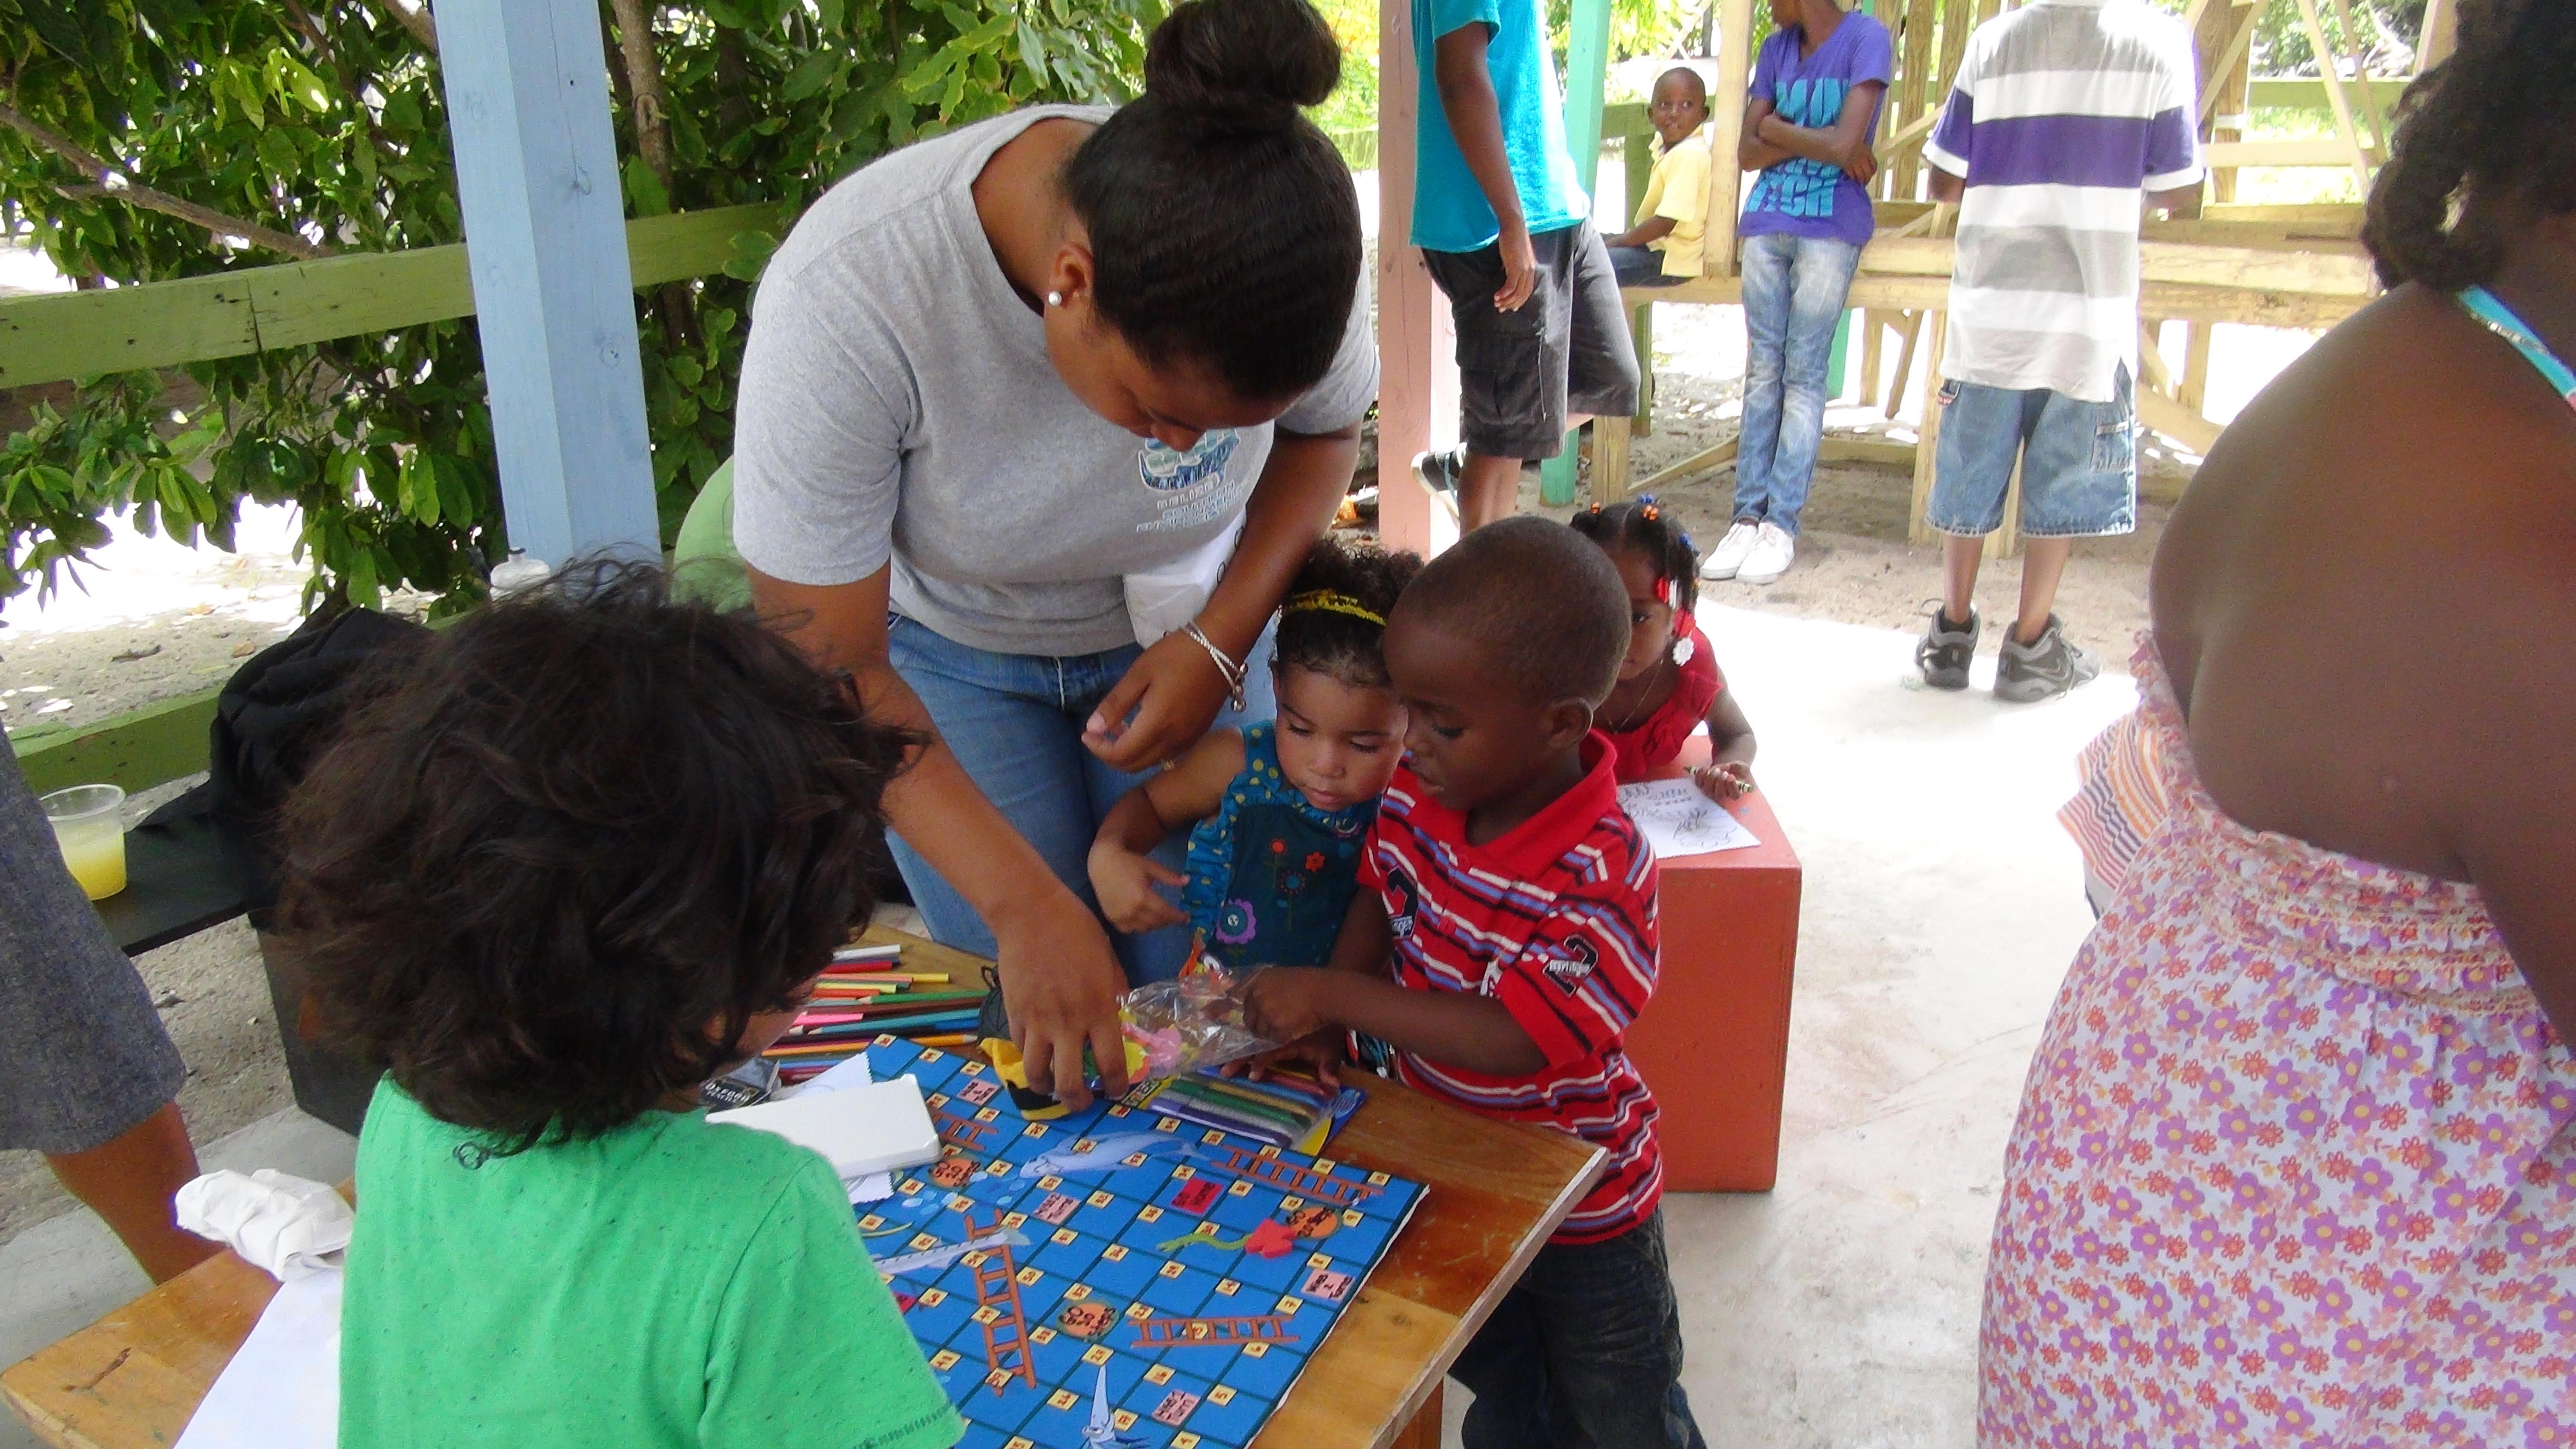 A Projects Abroad volunteer does conservation work and teaches children in Belize on our project for teenagers